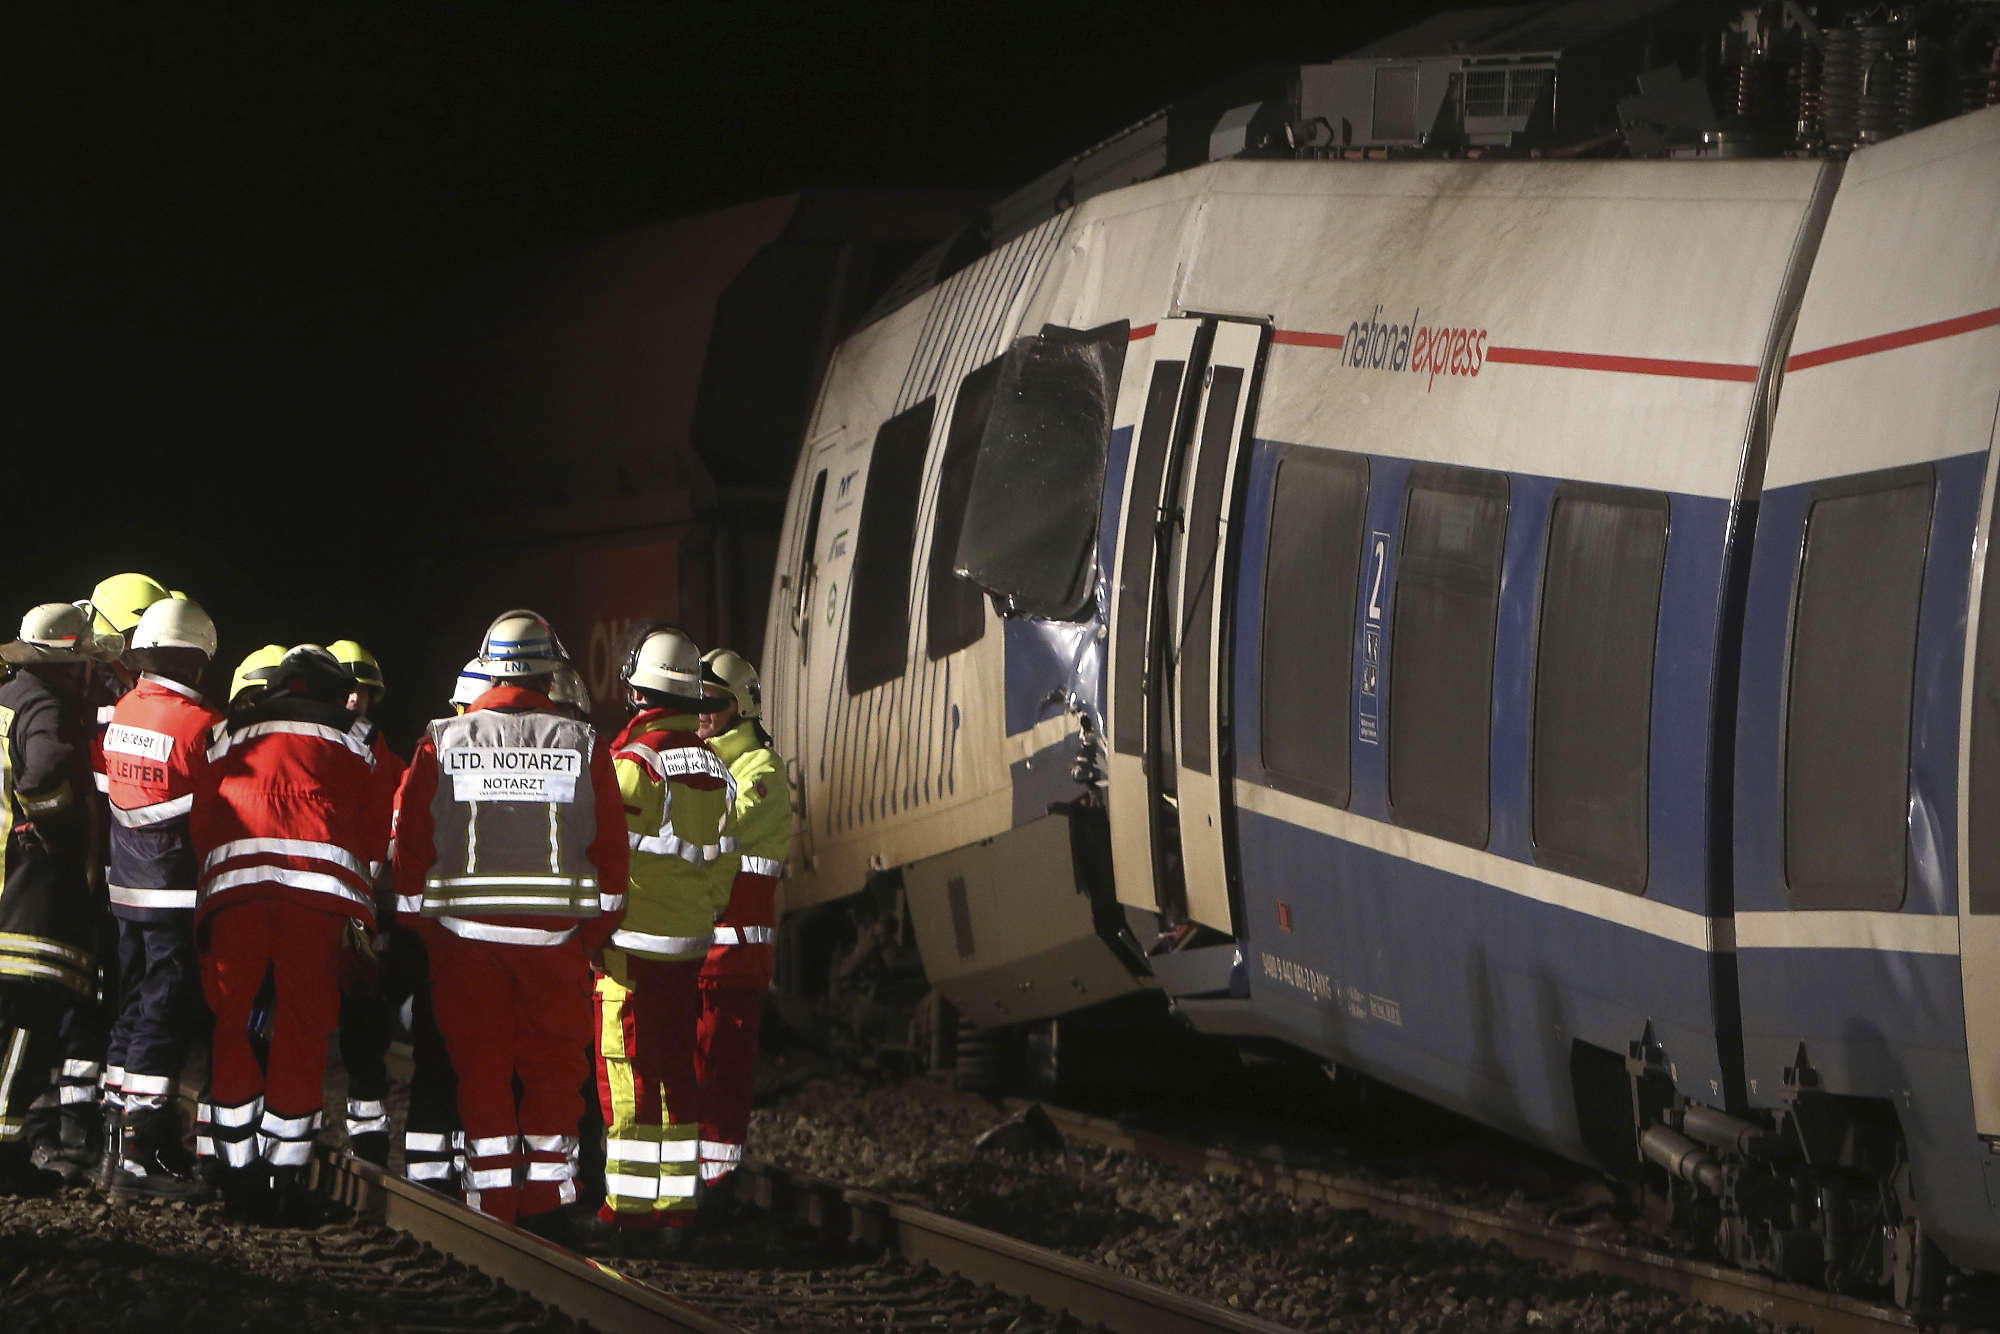 Firefighters stand beside a crashed train near Meerbusch, western Germany, Tuesday, Dec. 5, 2017. Several people have been injured when the passenger train collided with a cargo train. (David Young/dpa via AP)